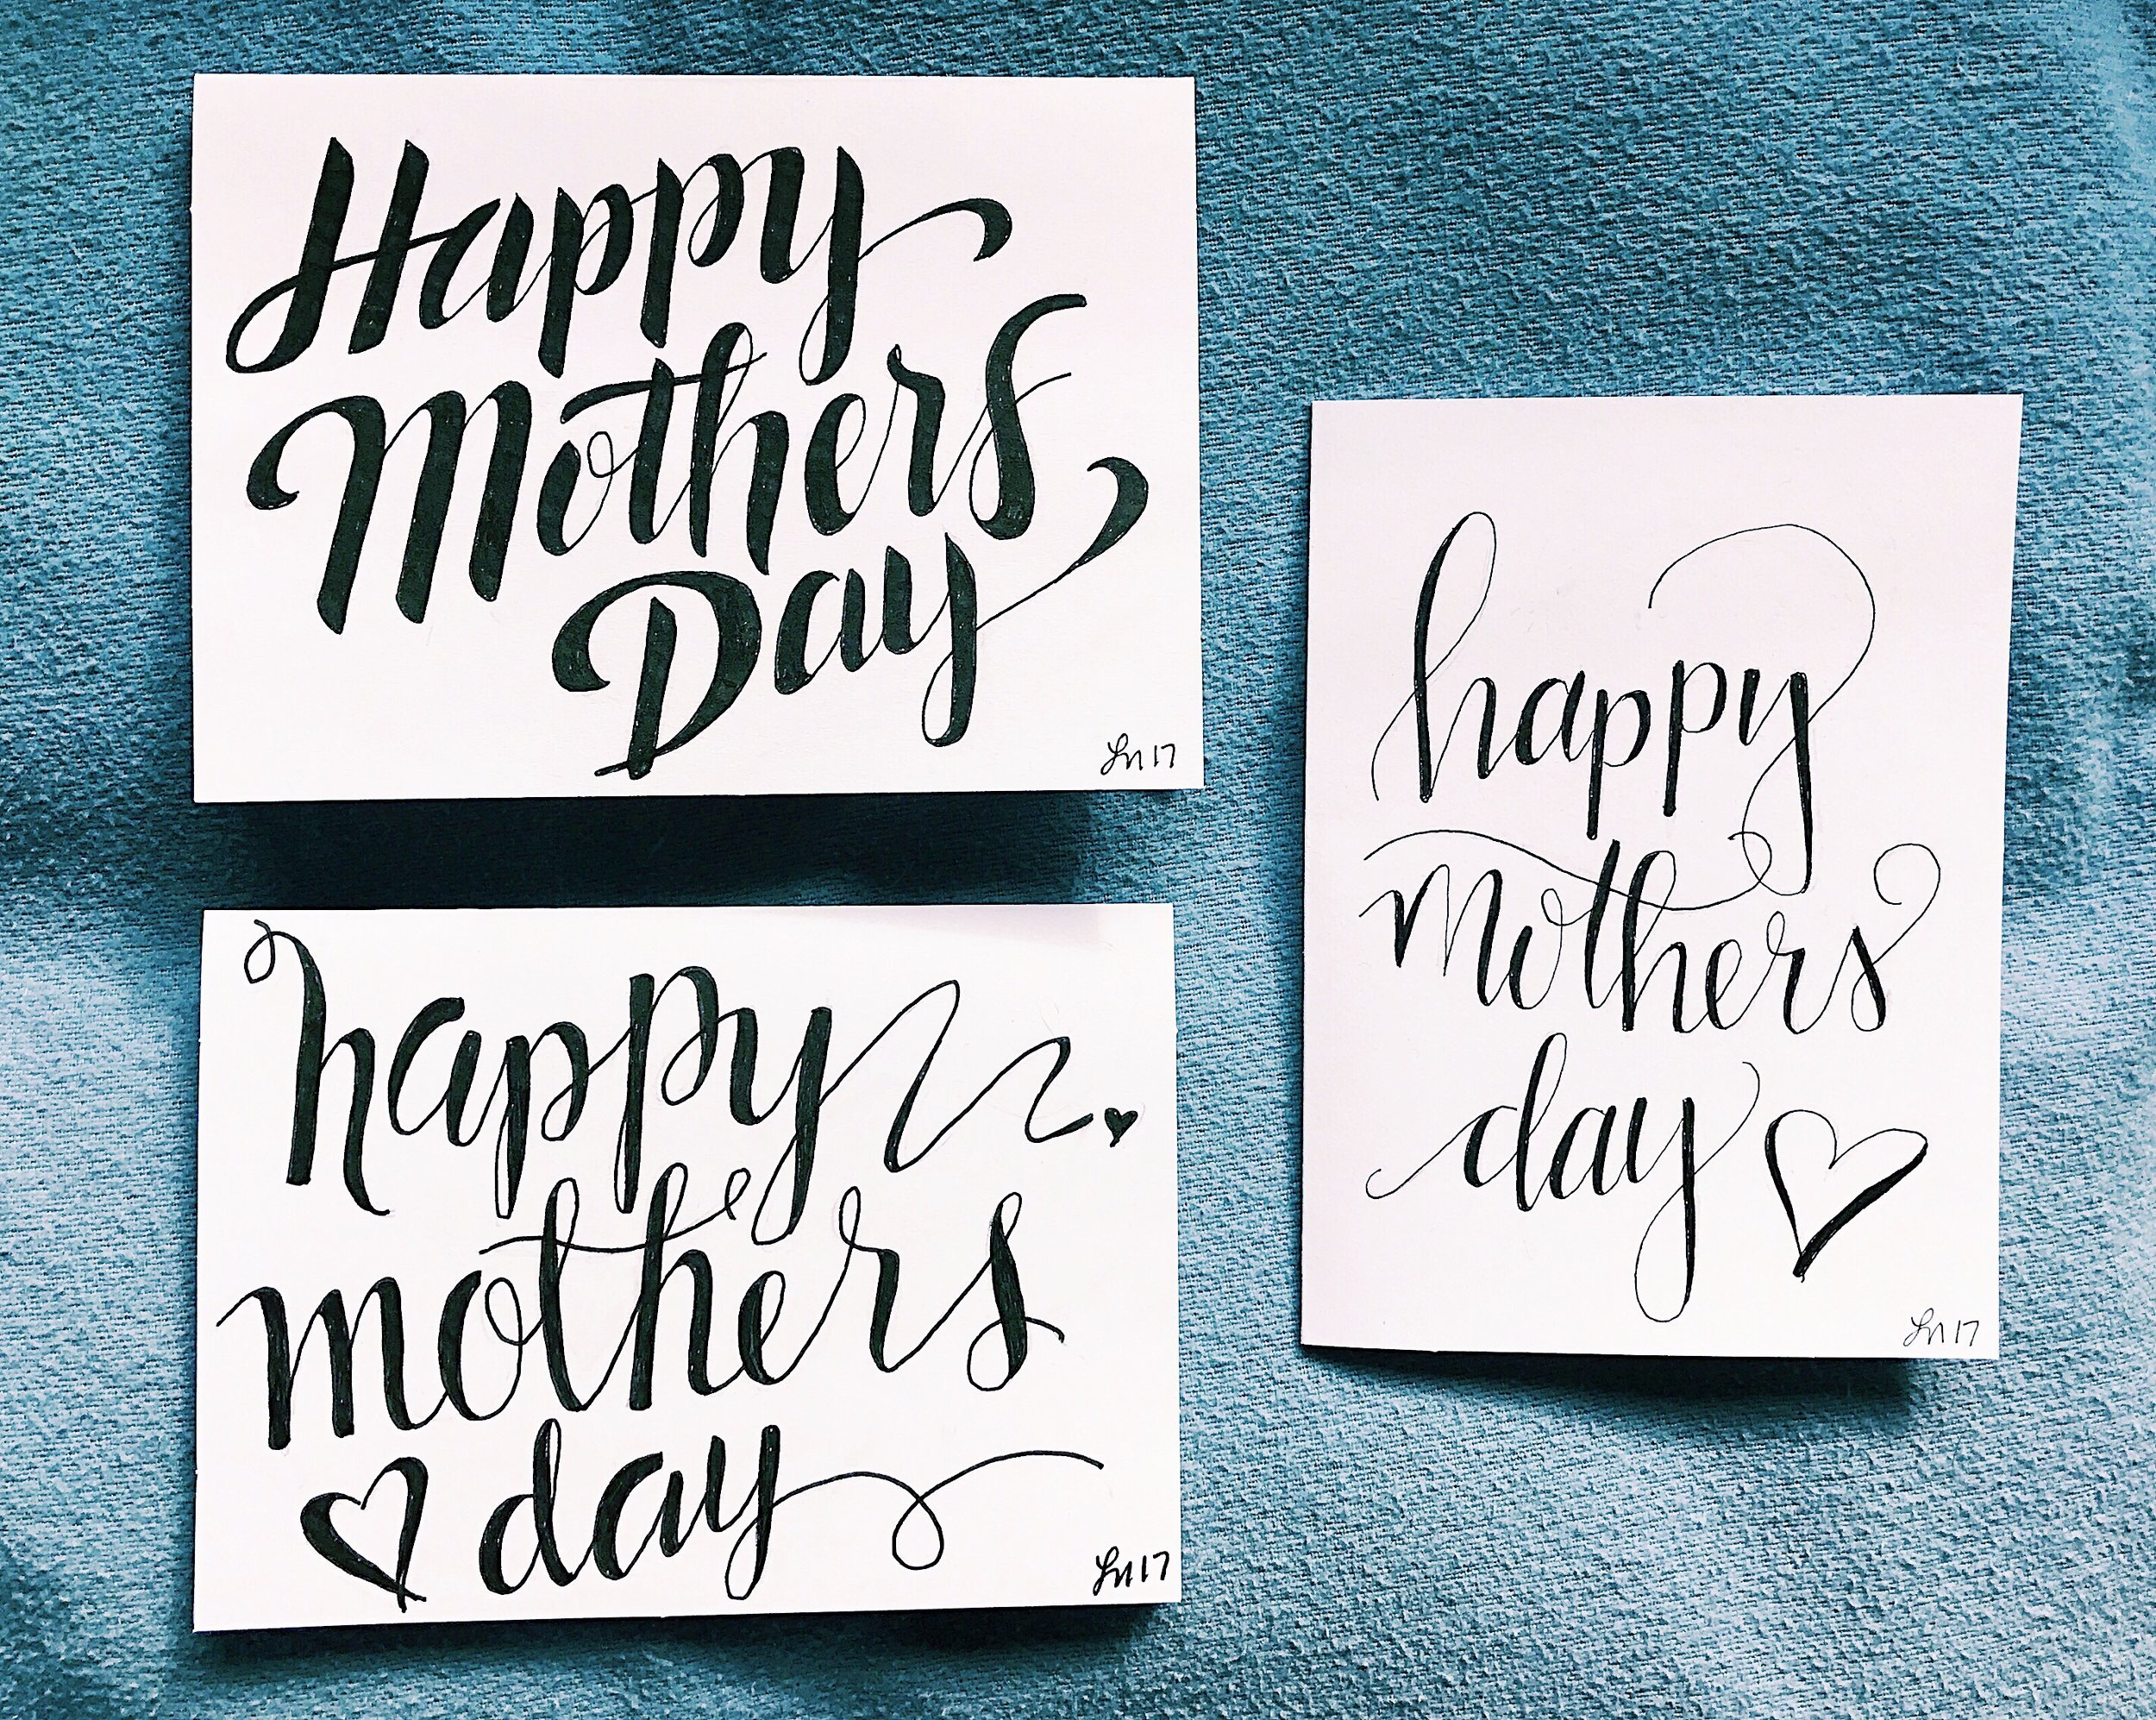 happy-mothers-day-2017.jpg